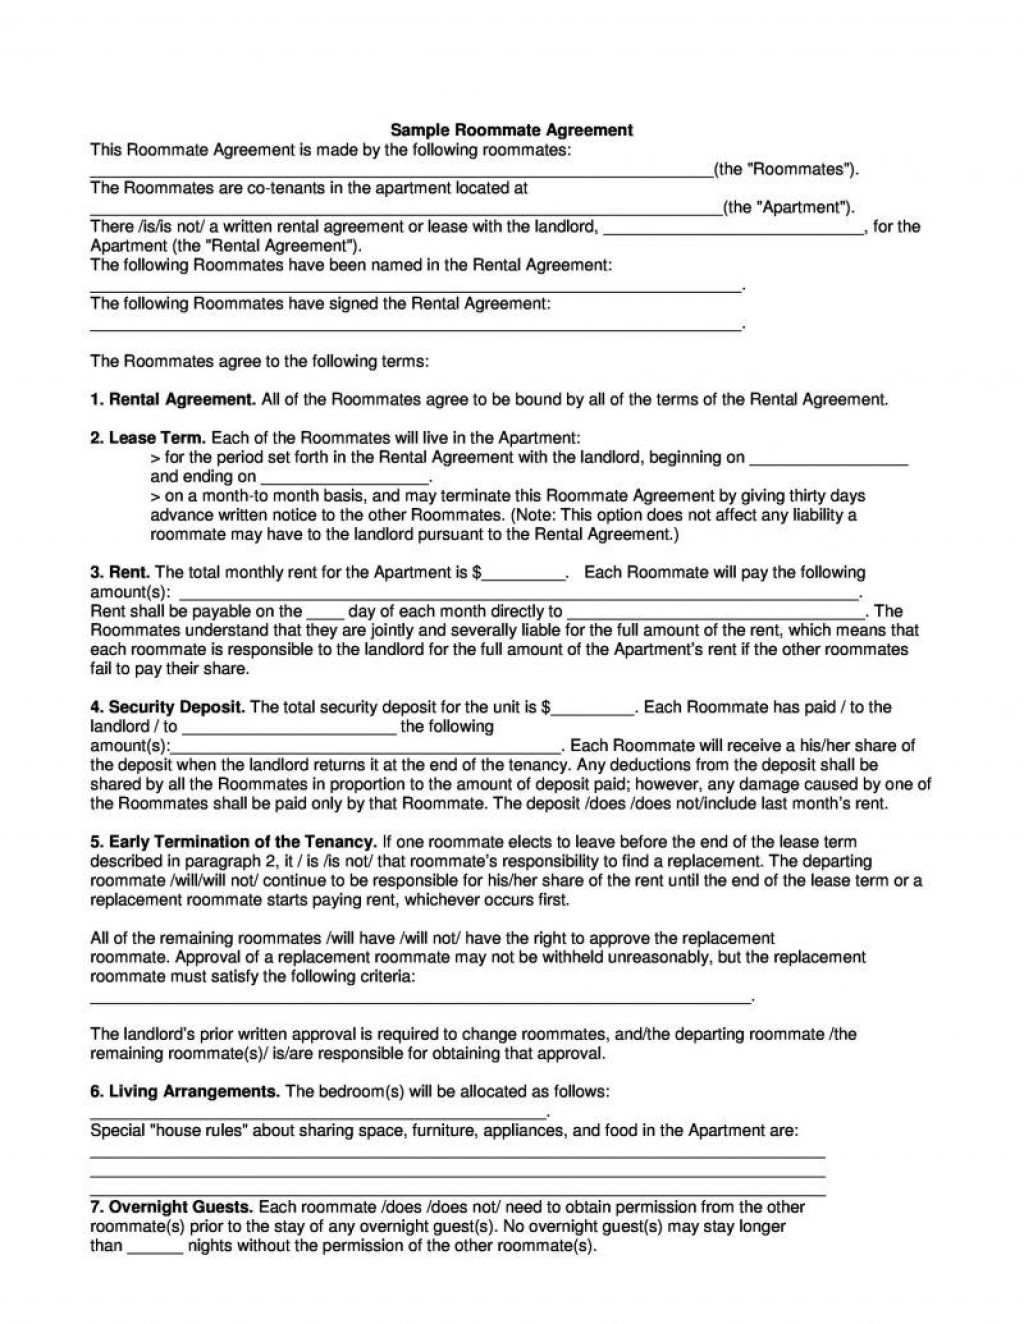 002 Incredible Rental House Contract Template Free Image  Agreement Form Property LeaseLarge